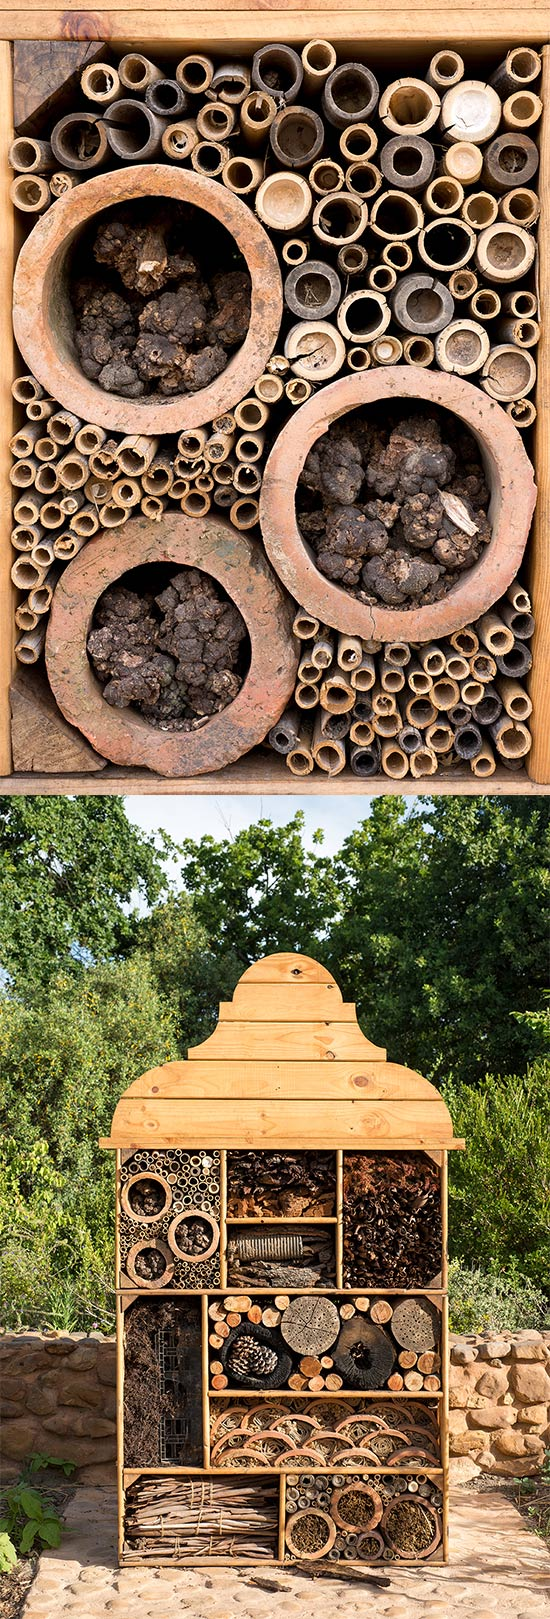 insecthotel_footer